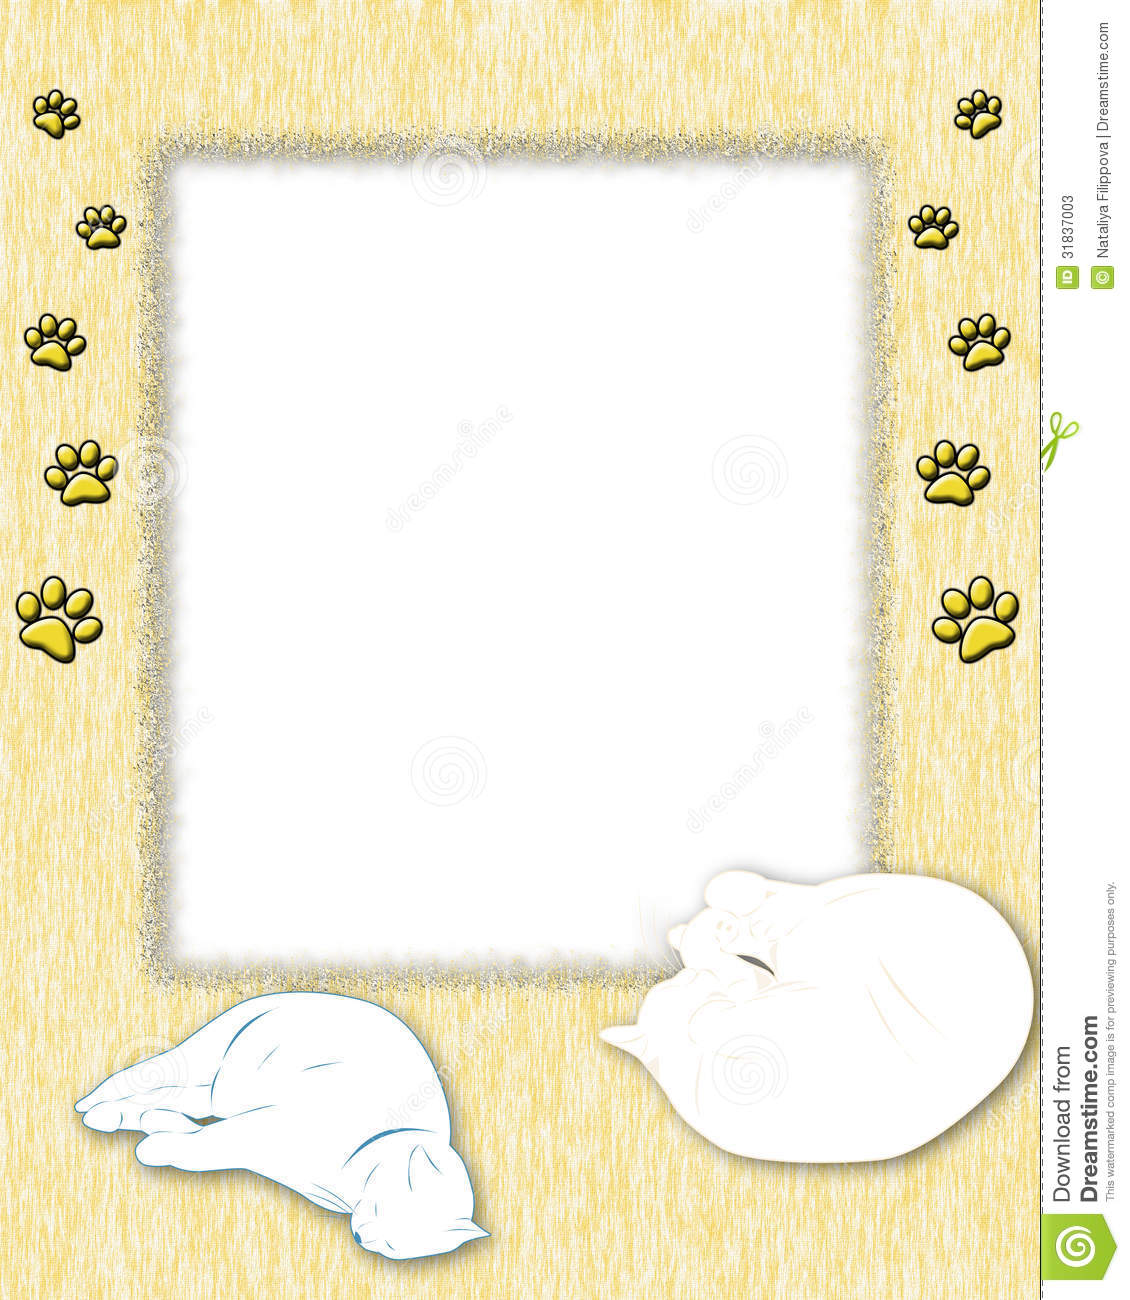 yellow frame with texture with two cats and cat footprints